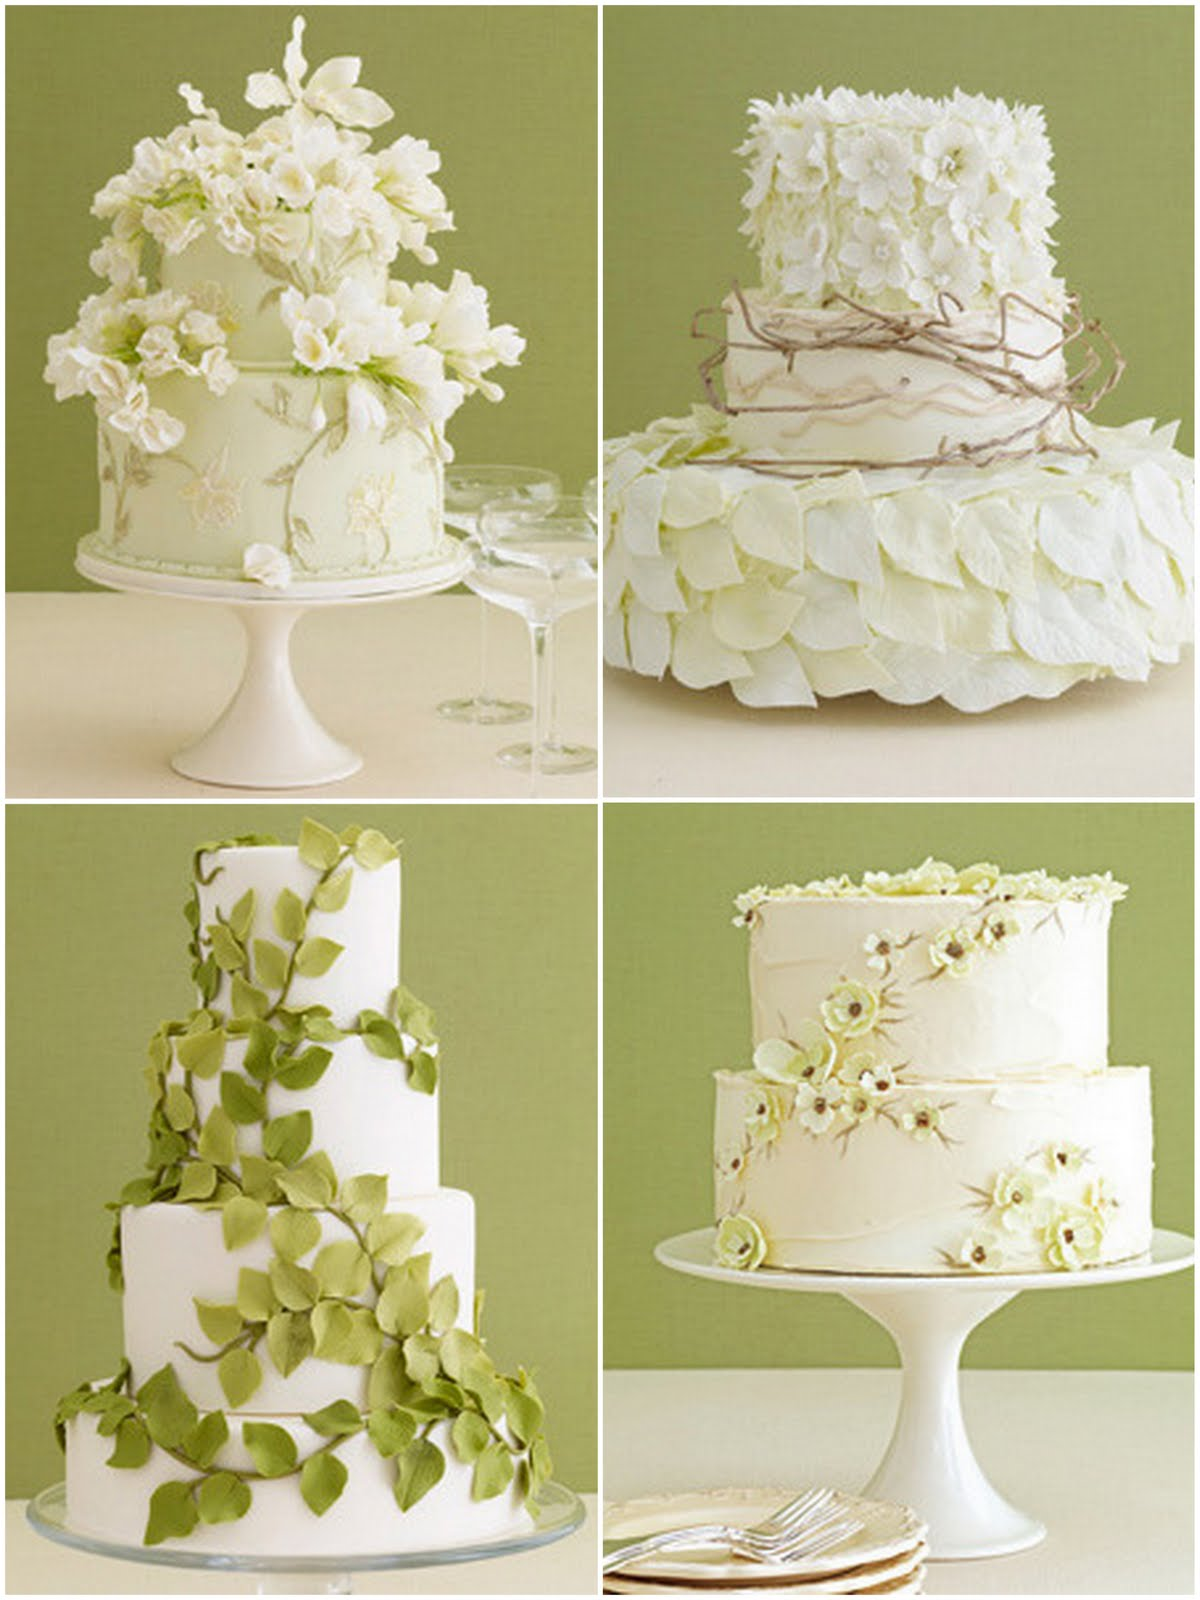 Cake Decor Without Fondant : Jacs Of All Trades: Cake Decorating 101 - Part 3: Covering ...